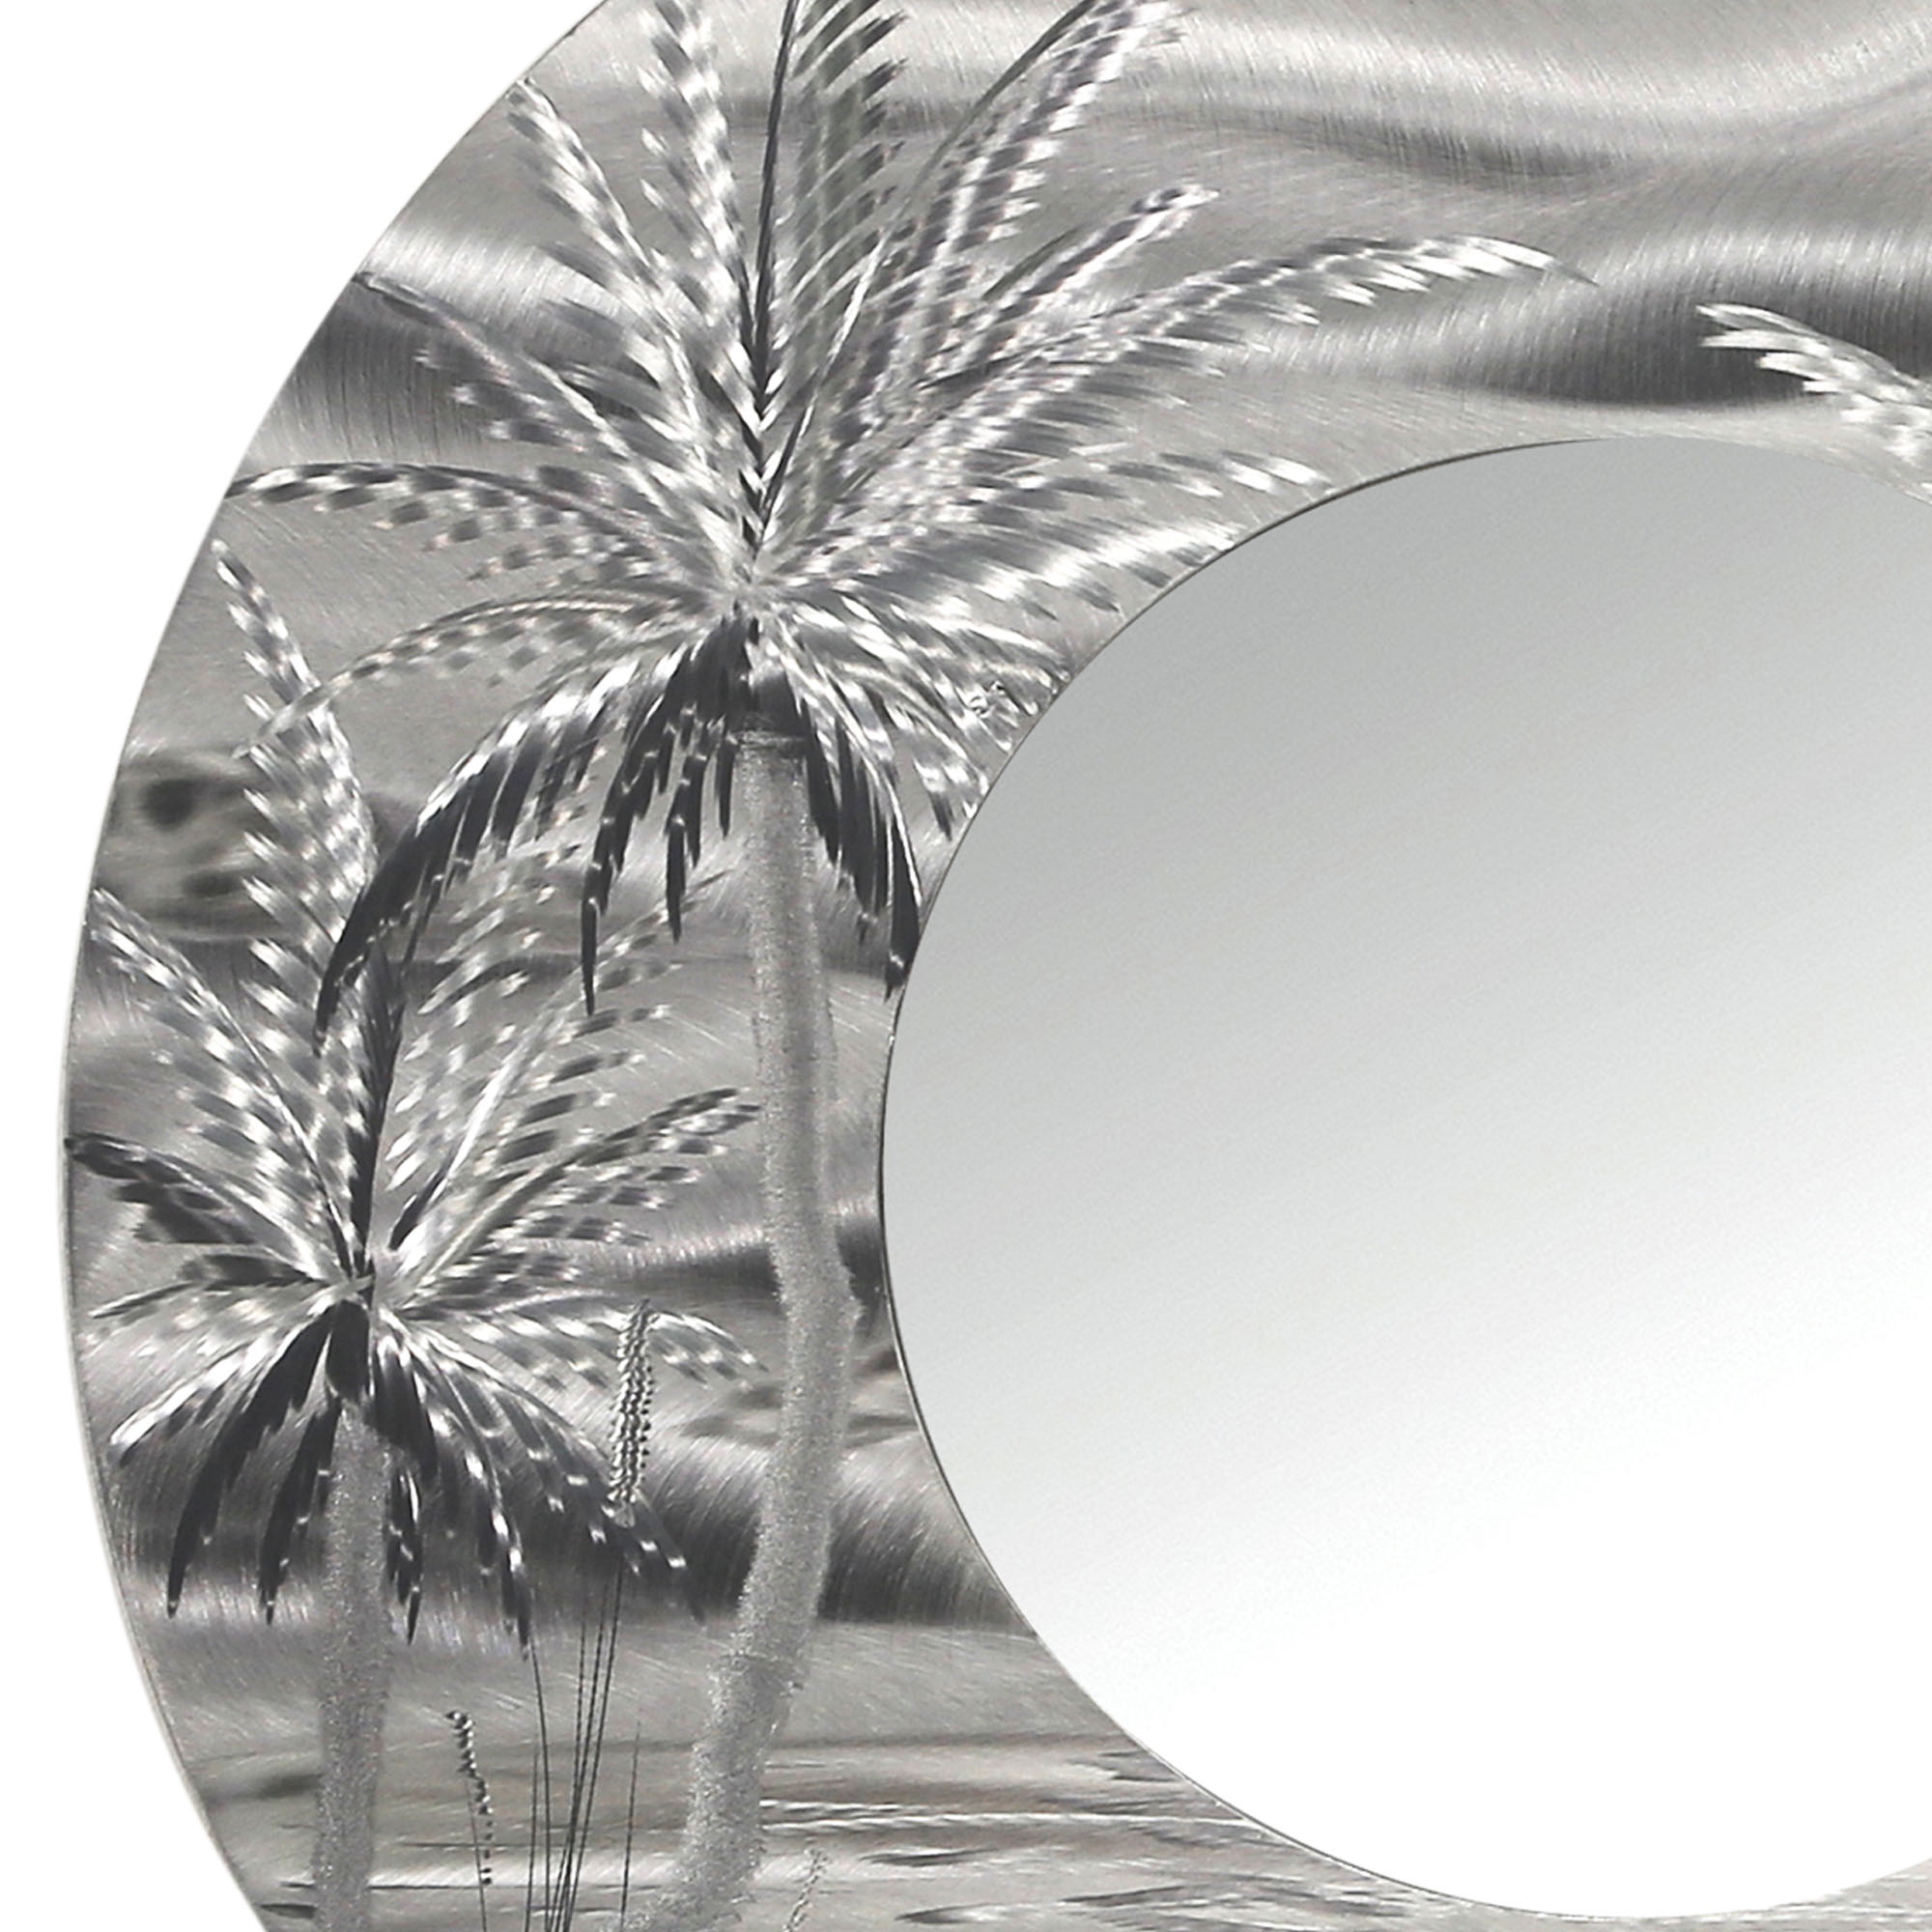 Tropical Wall Mirrors For Most Current Mirror 106 – Modern Tropical Metal Wall Mirror – Silver Abstract Palm Tree Metal Accent Art (View 1 of 20)